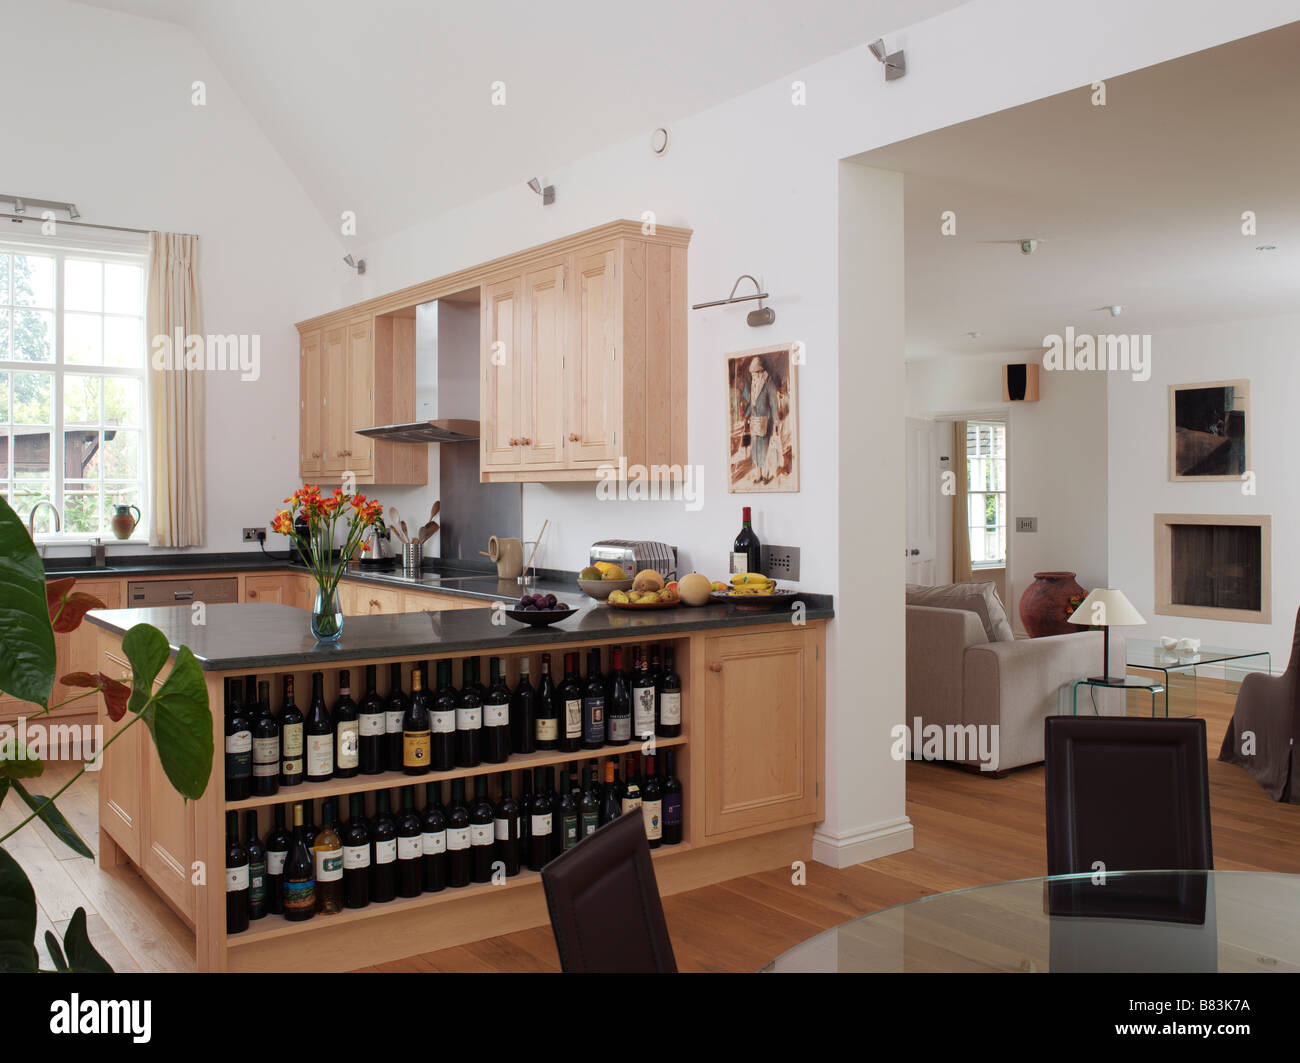 Stock Photo   open plan kitchen and dining room with wine shelves and view  through to living roomopen plan kitchen and dining room with wine shelves and view  . Pictures Of Open Plan Kitchen And Dining Room. Home Design Ideas